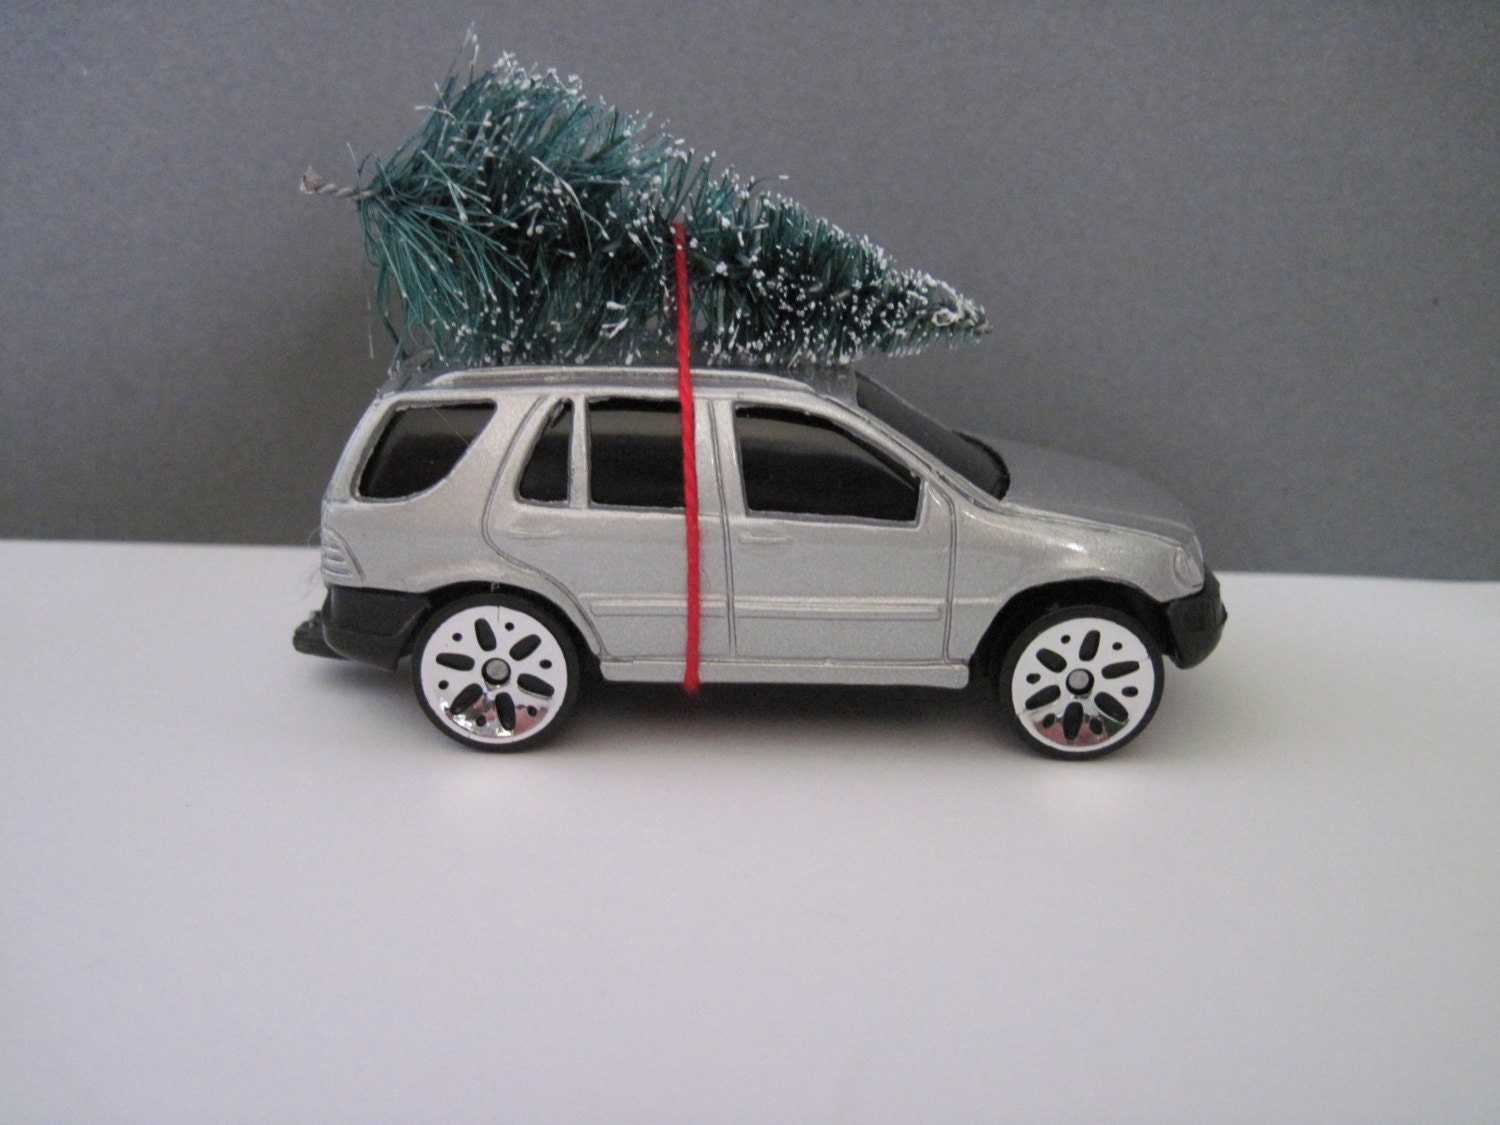 Mercedes benz toy car christmas ornament or embellishment for Mercedes benz christmas ornament